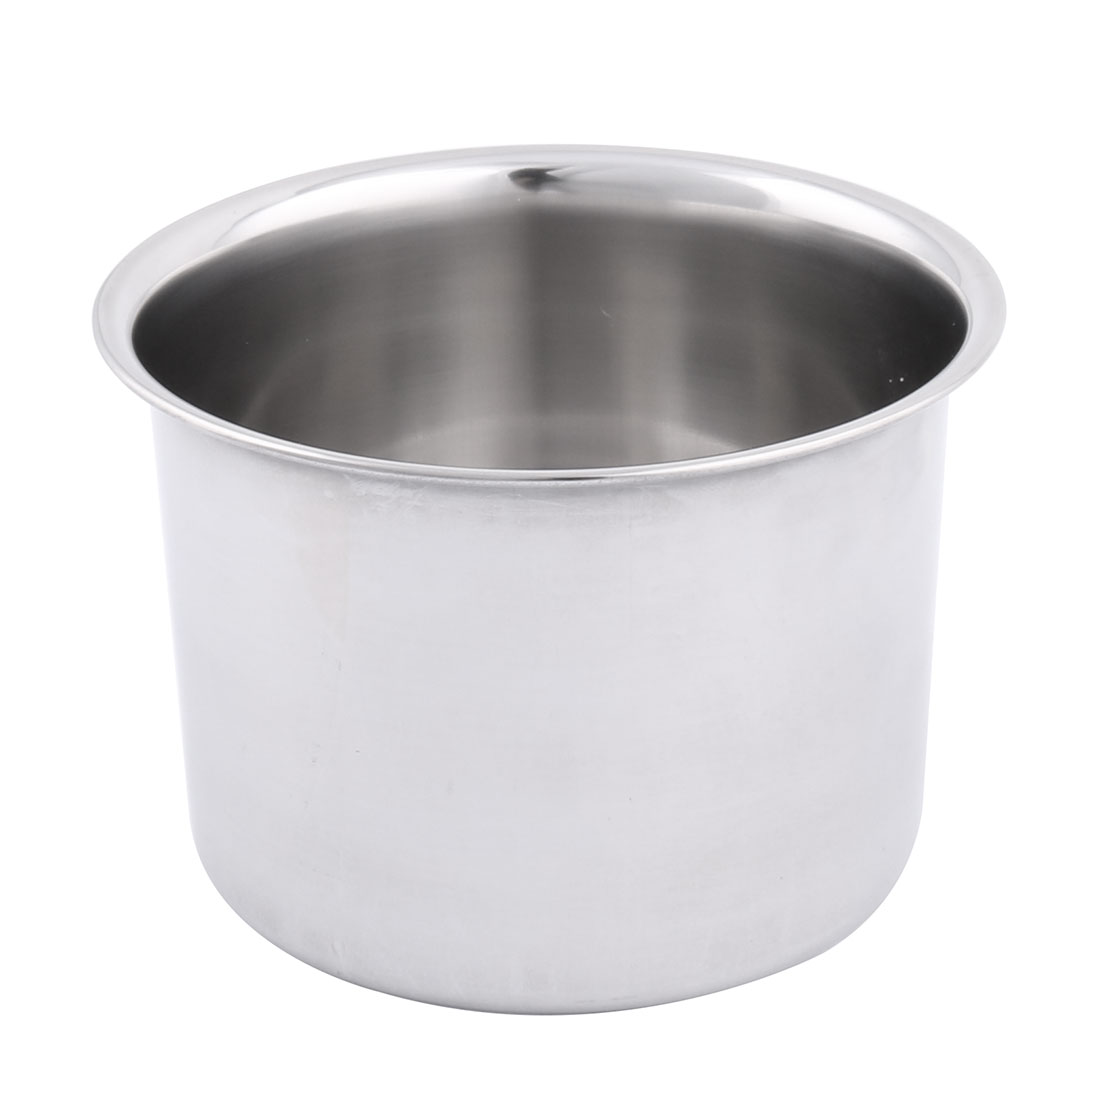 Household Stainless Steel Round Shaped Soup Water Multifuction Kitchen Bowl Container 12cm Dia